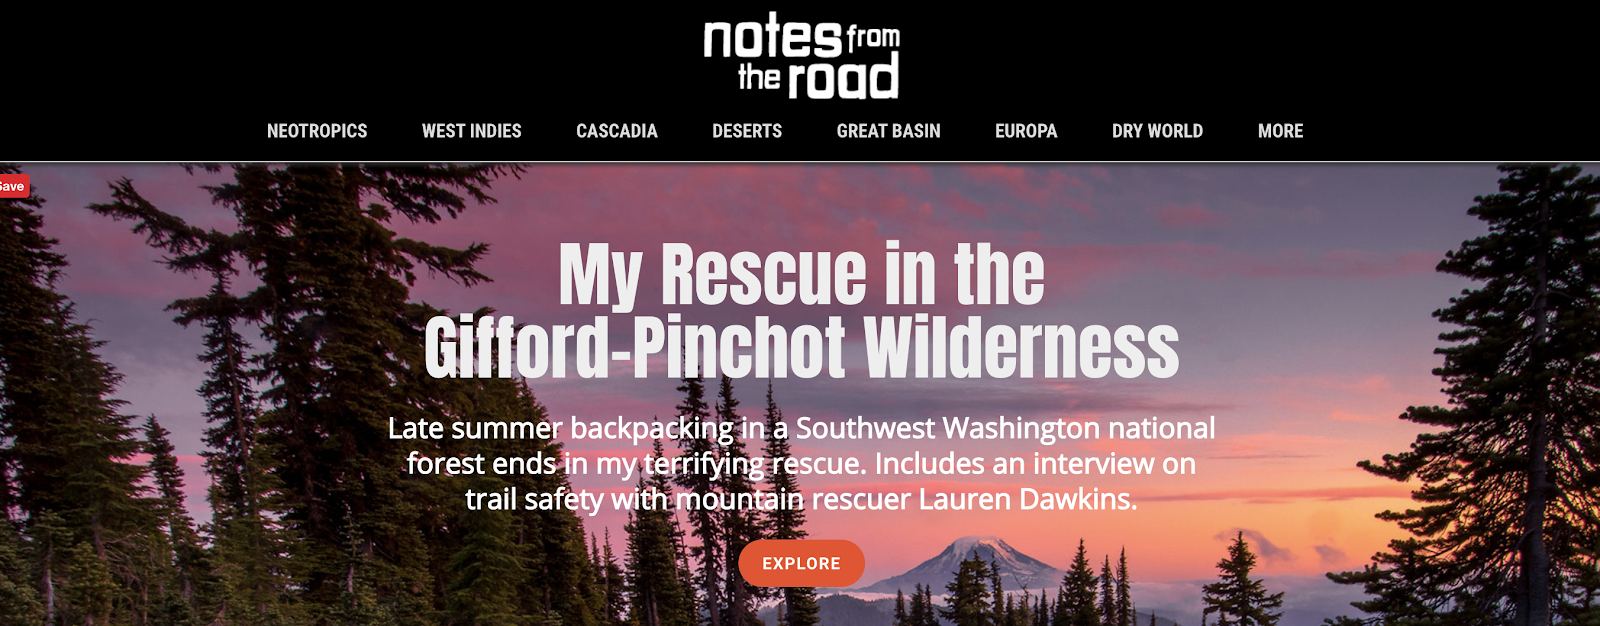 Notes From the Road Blog in the Travel and Adventure Niche